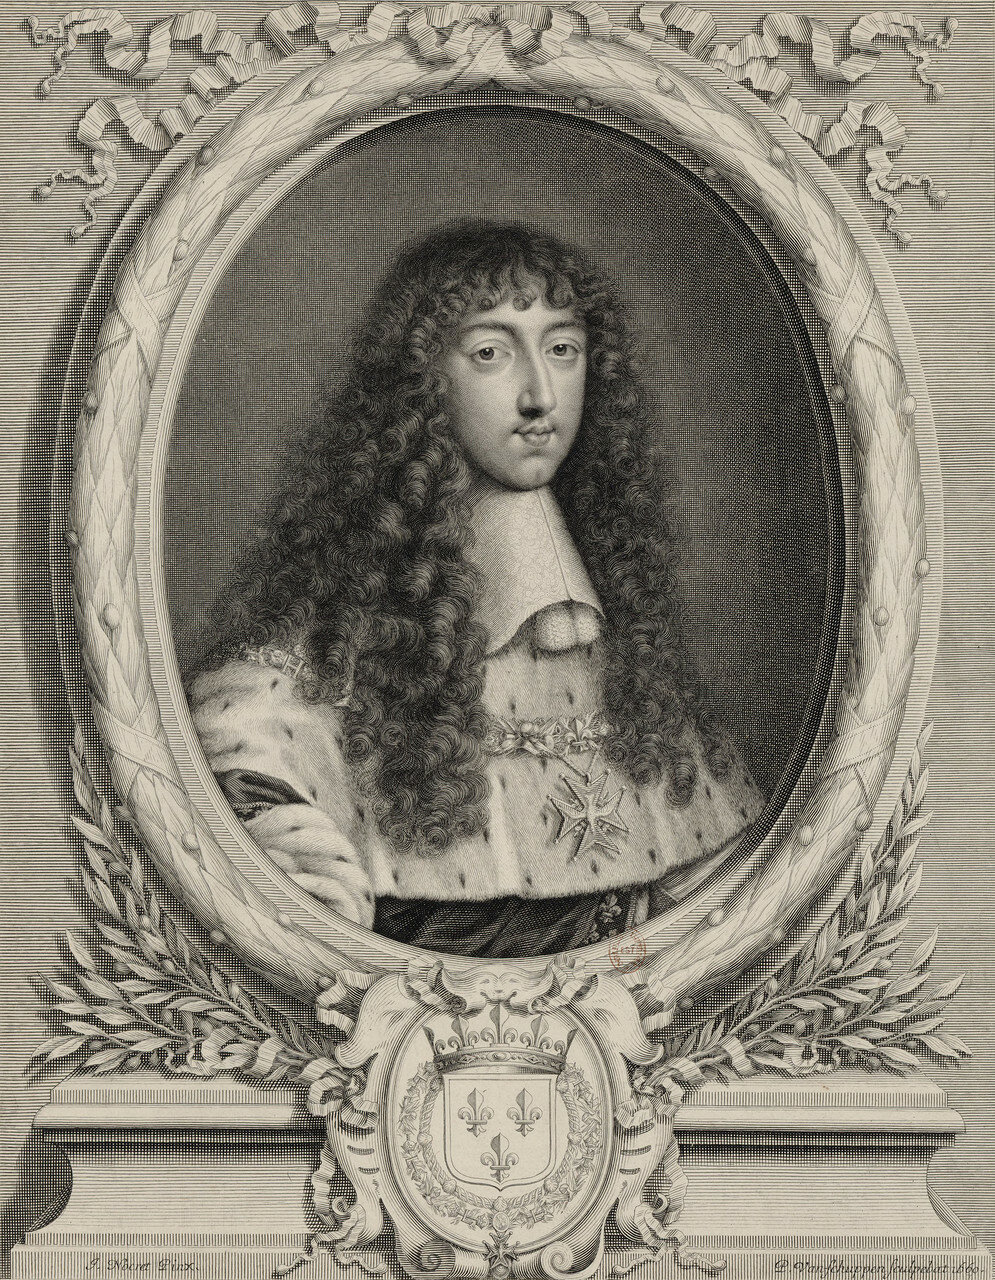 Portrait_of_Louis_XIV_of_France_-_van_Schuppen_1660.jpg